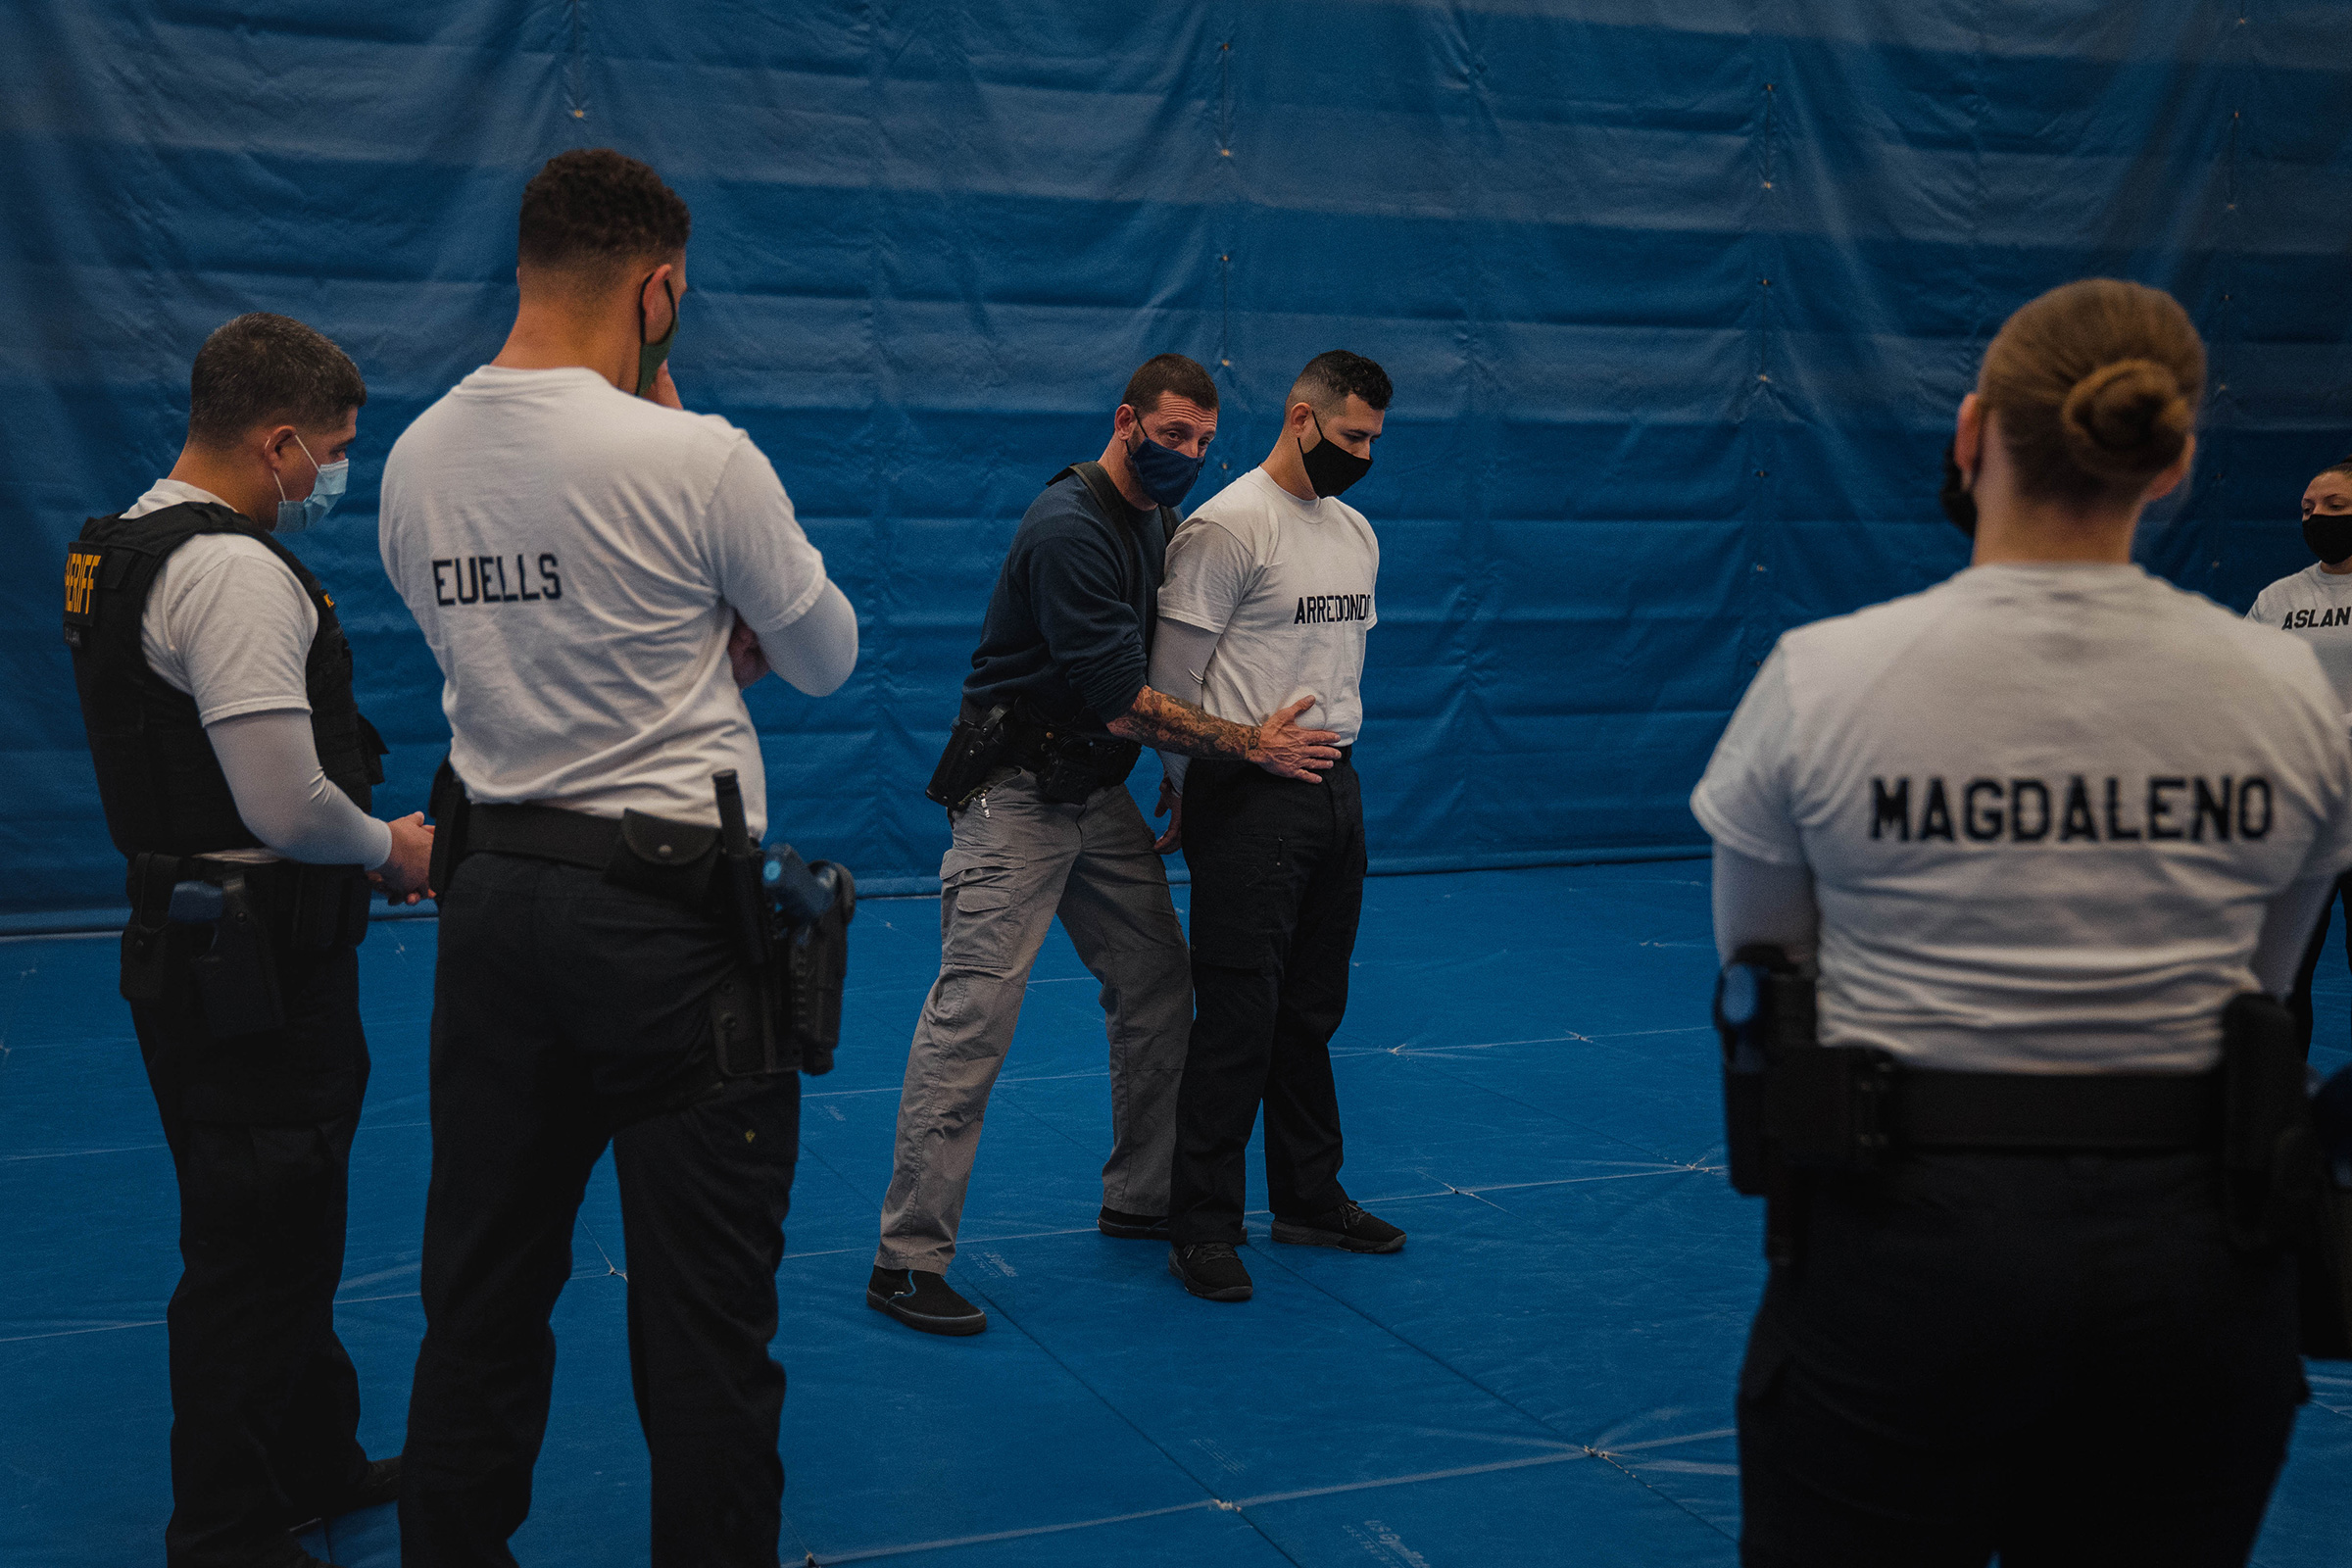 Instructor Javier Sola teaches frisking and handcuffing methods to future law enforcement officers at the state-run training facility in Washington state.